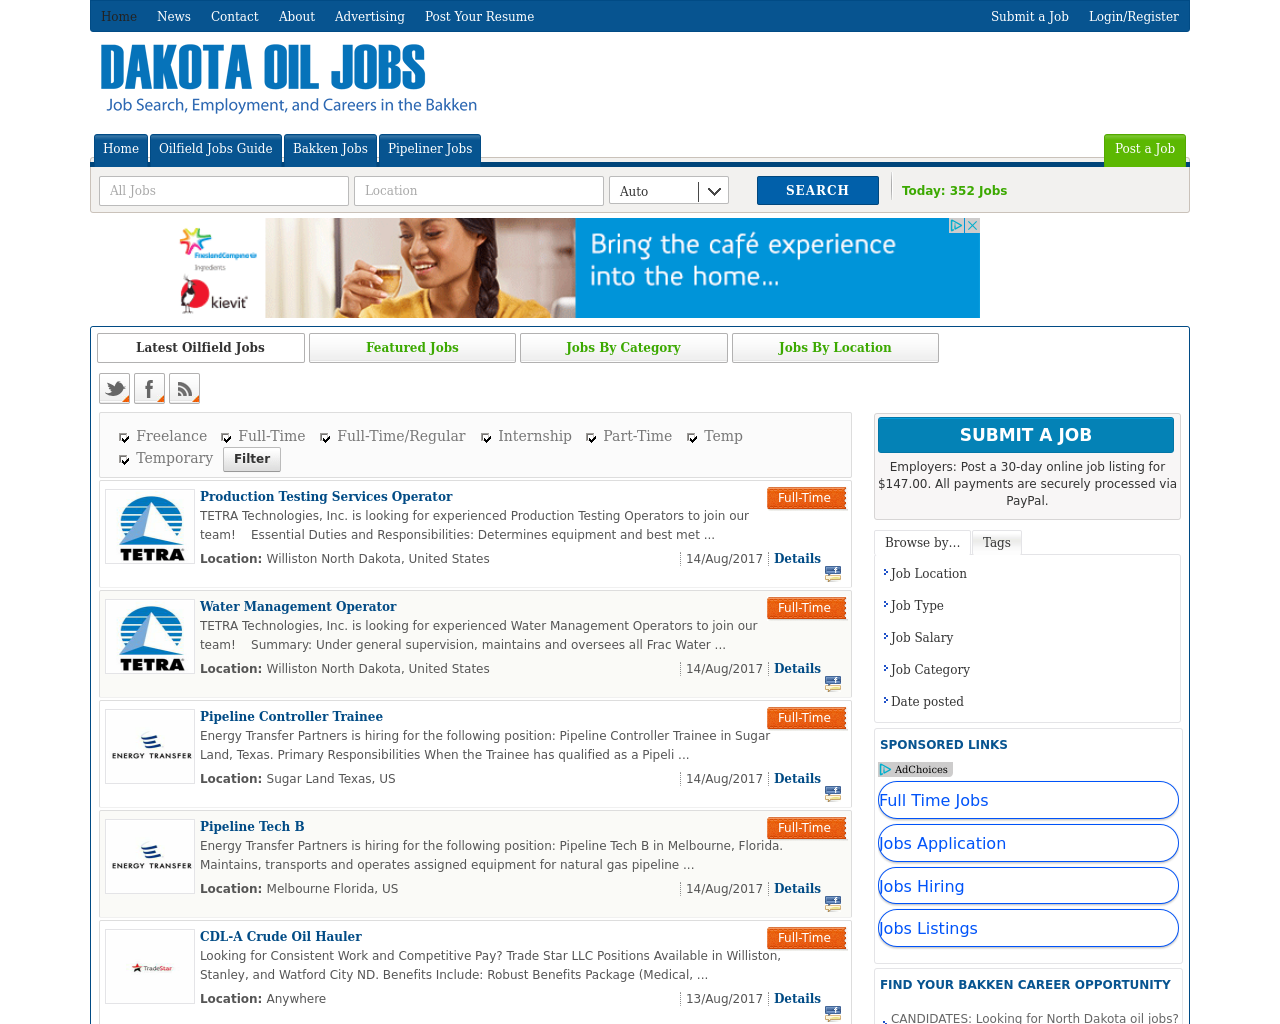 Dakota-Oil-Jobs-Advertising-Reviews-Pricing